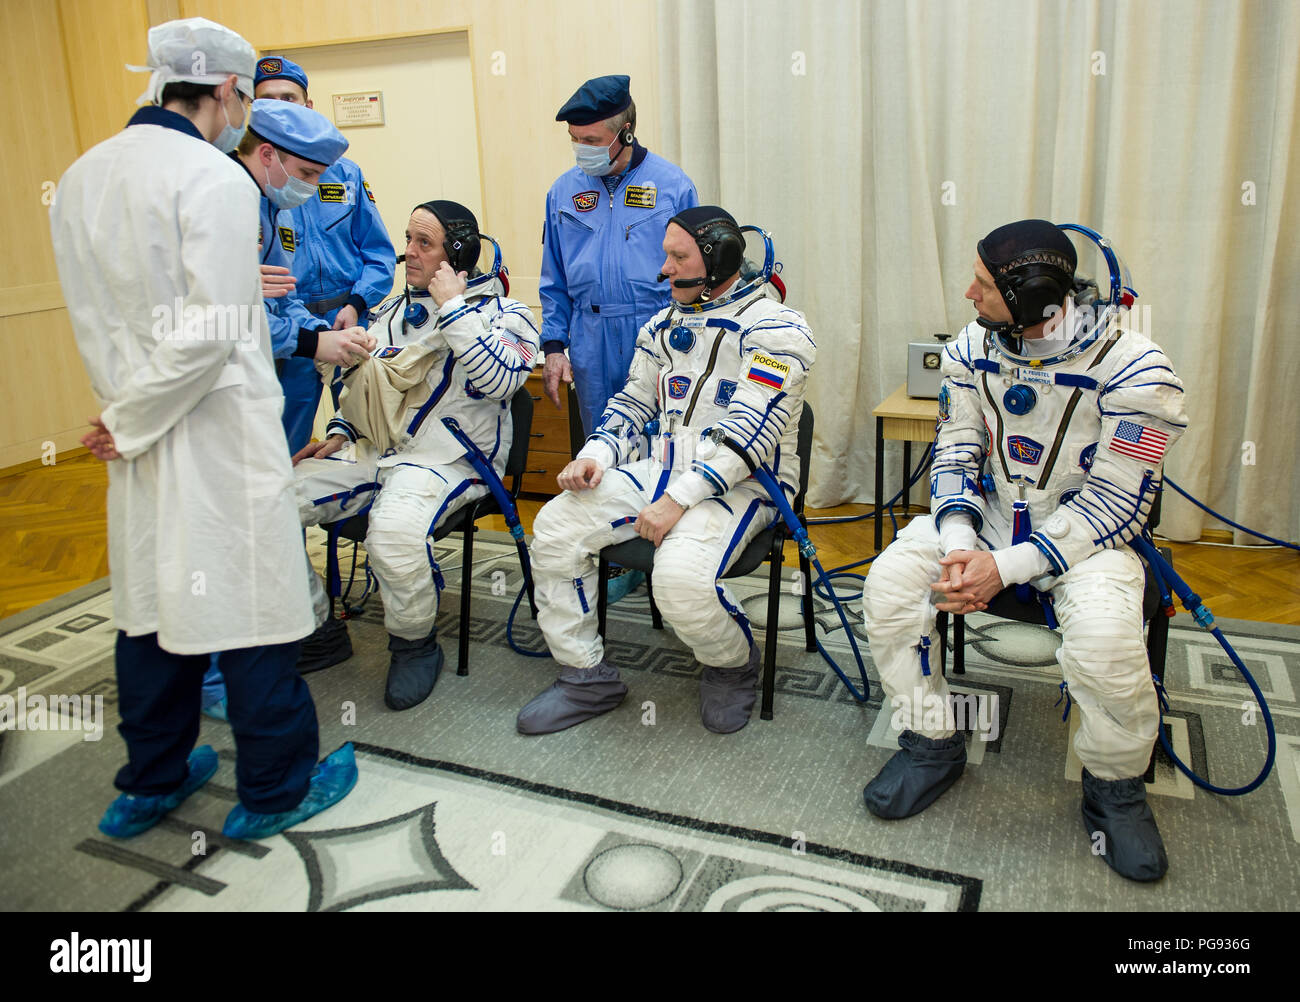 Expedition 55 flight engineer Ricky Arnold of NASA, left, is helped into his Russian Sokol suit as he and fellow crewmates, Soyuz Commander Oleg Artemyev of Roscosmos, center, and flight engineer Drew Feustel of NASA, right, prepare for their Soyuz launch to the International Space Station, Wednesday, March 21, 2018 in Baikonur, Kazakhstan. Arnold, Artemyev, and Feustel launched aboard the Soyuz MS-08 spacecraft at 1:44 p.m. Eastern time (11:44 p.m. Baikonur time) on March 21 to begin their journey to the International Space Station. - Stock Image